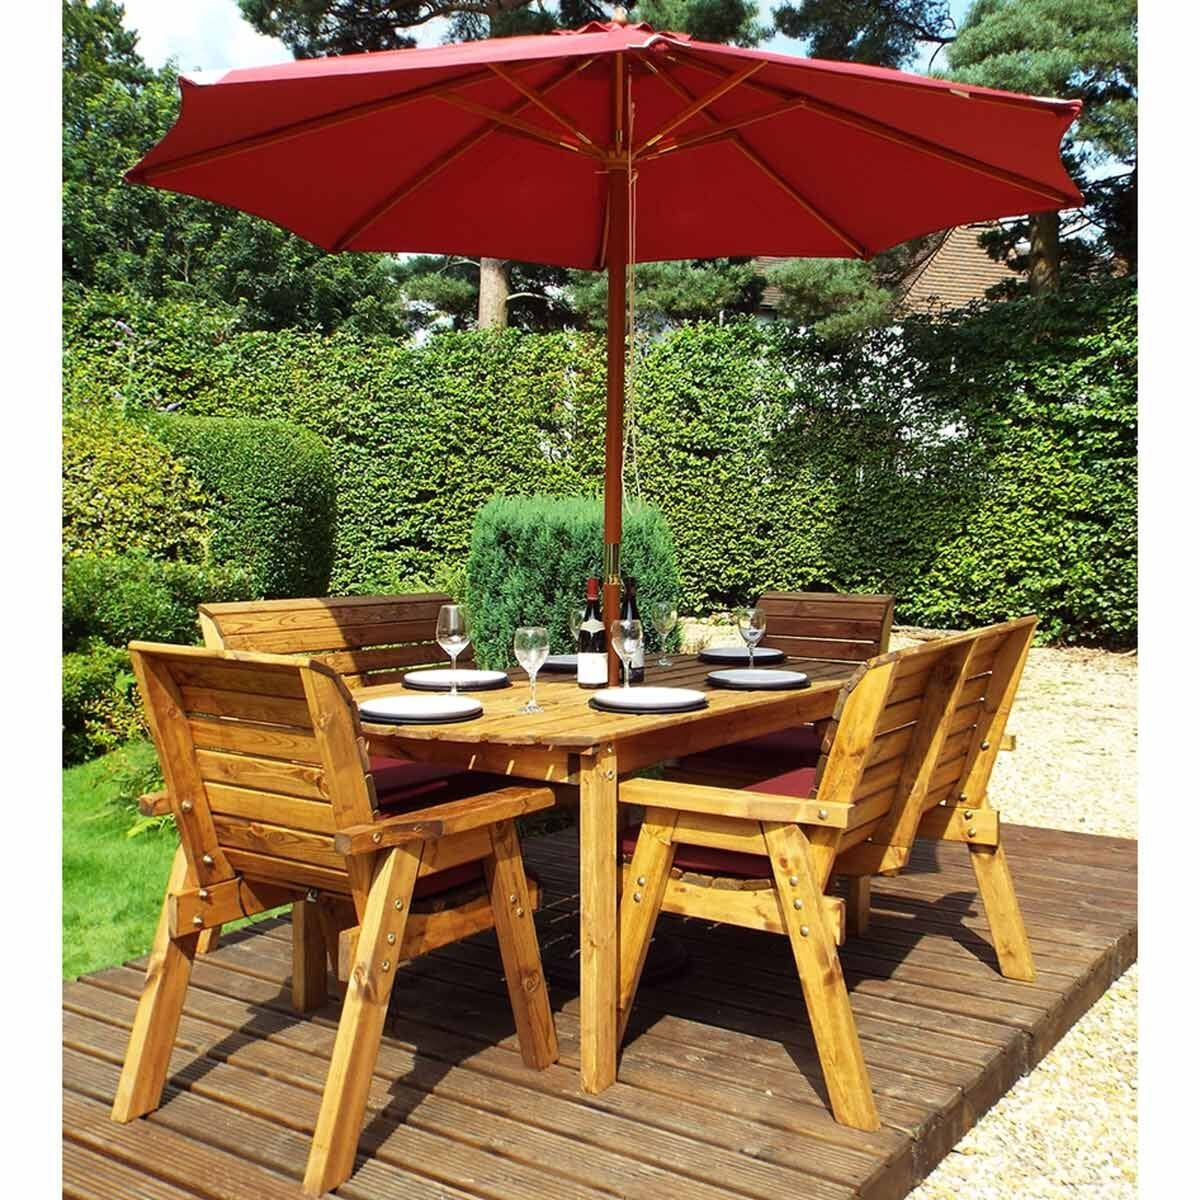 Charles Taylor Six Seater Table Set with Benches and Parasol Burgundy